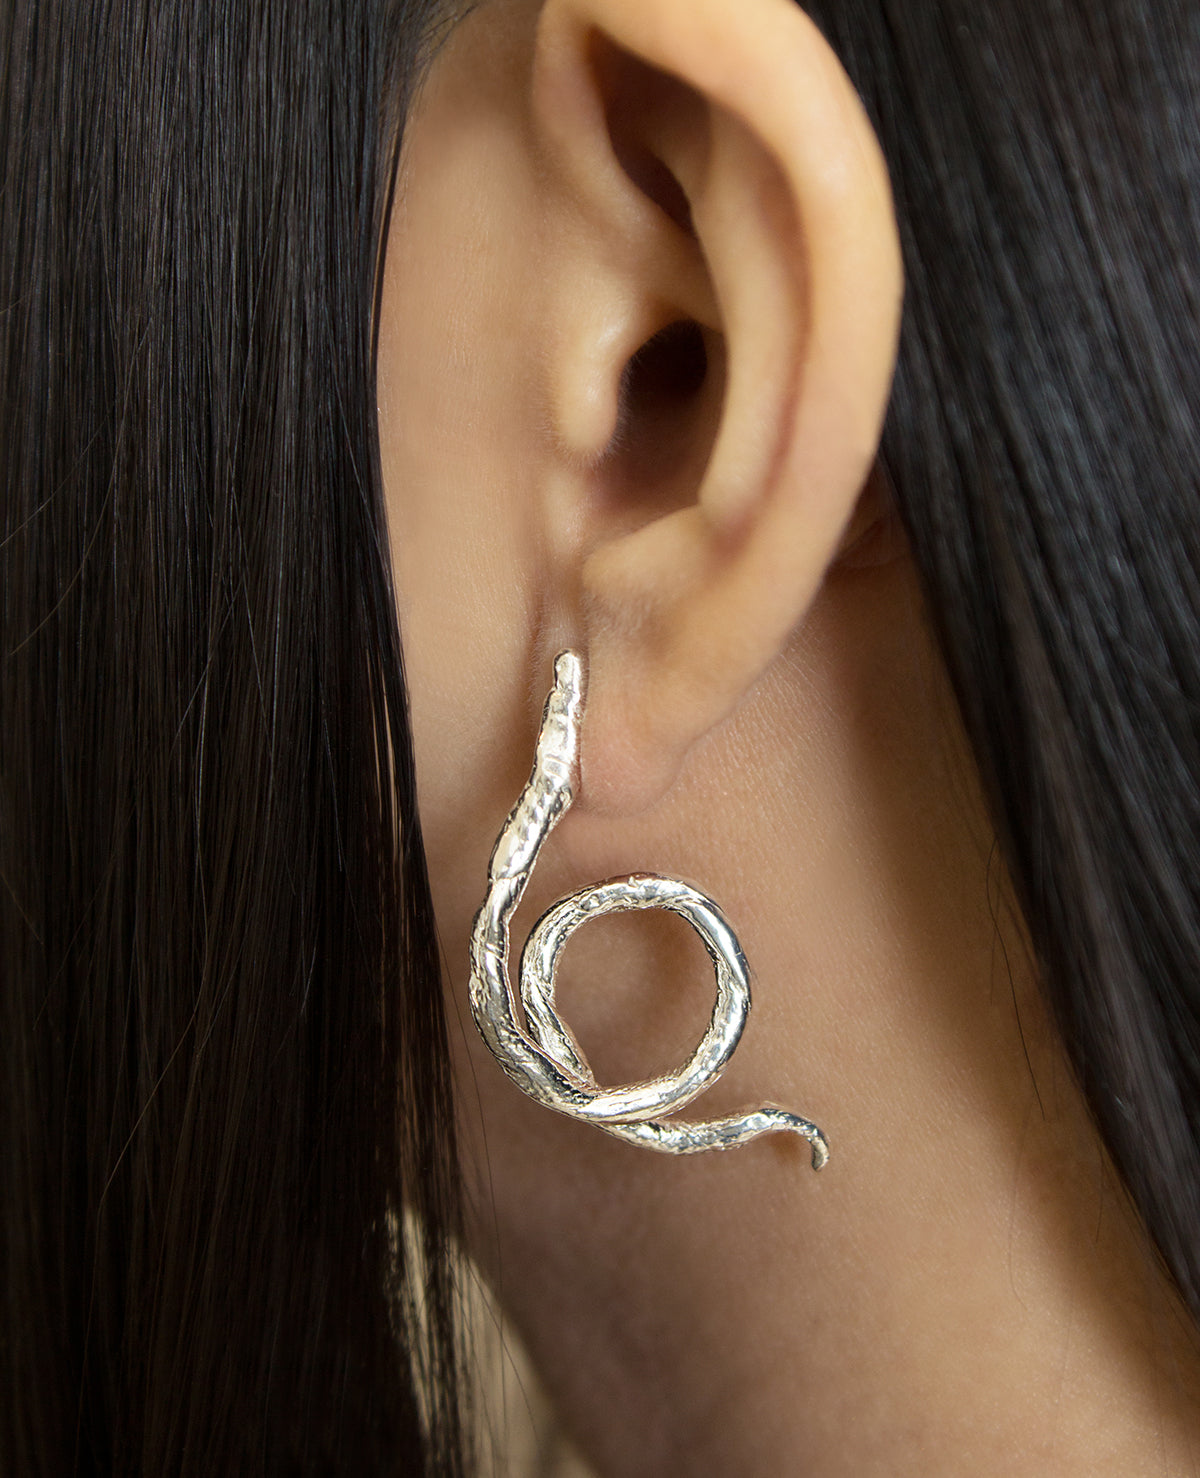 YVONNE // silver - ORA-C jewelry - handmade jewelry by Montreal based independent designer Caroline Pham